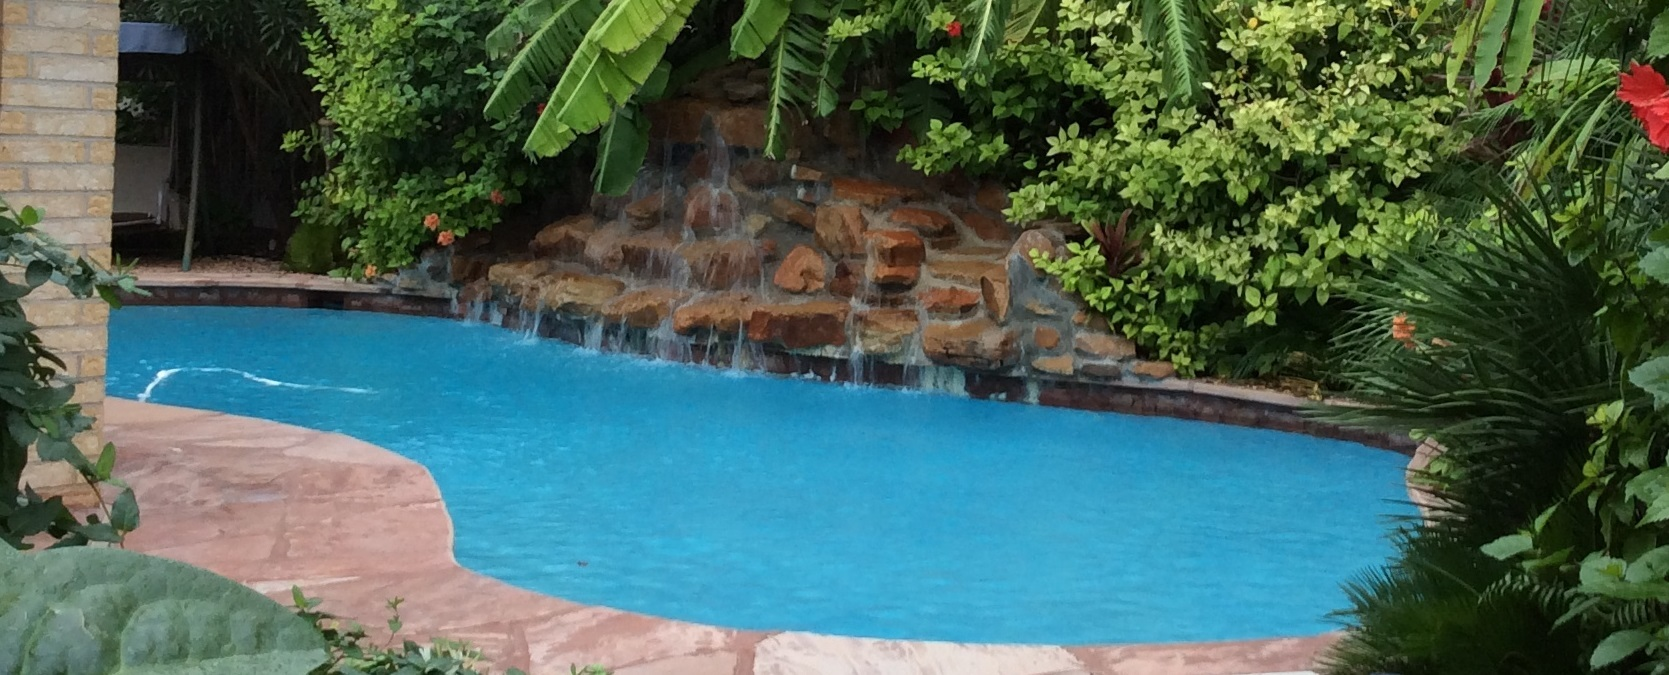 Atlantic pools coupons near me in mcallen 8coupons for Pool showrooms near me